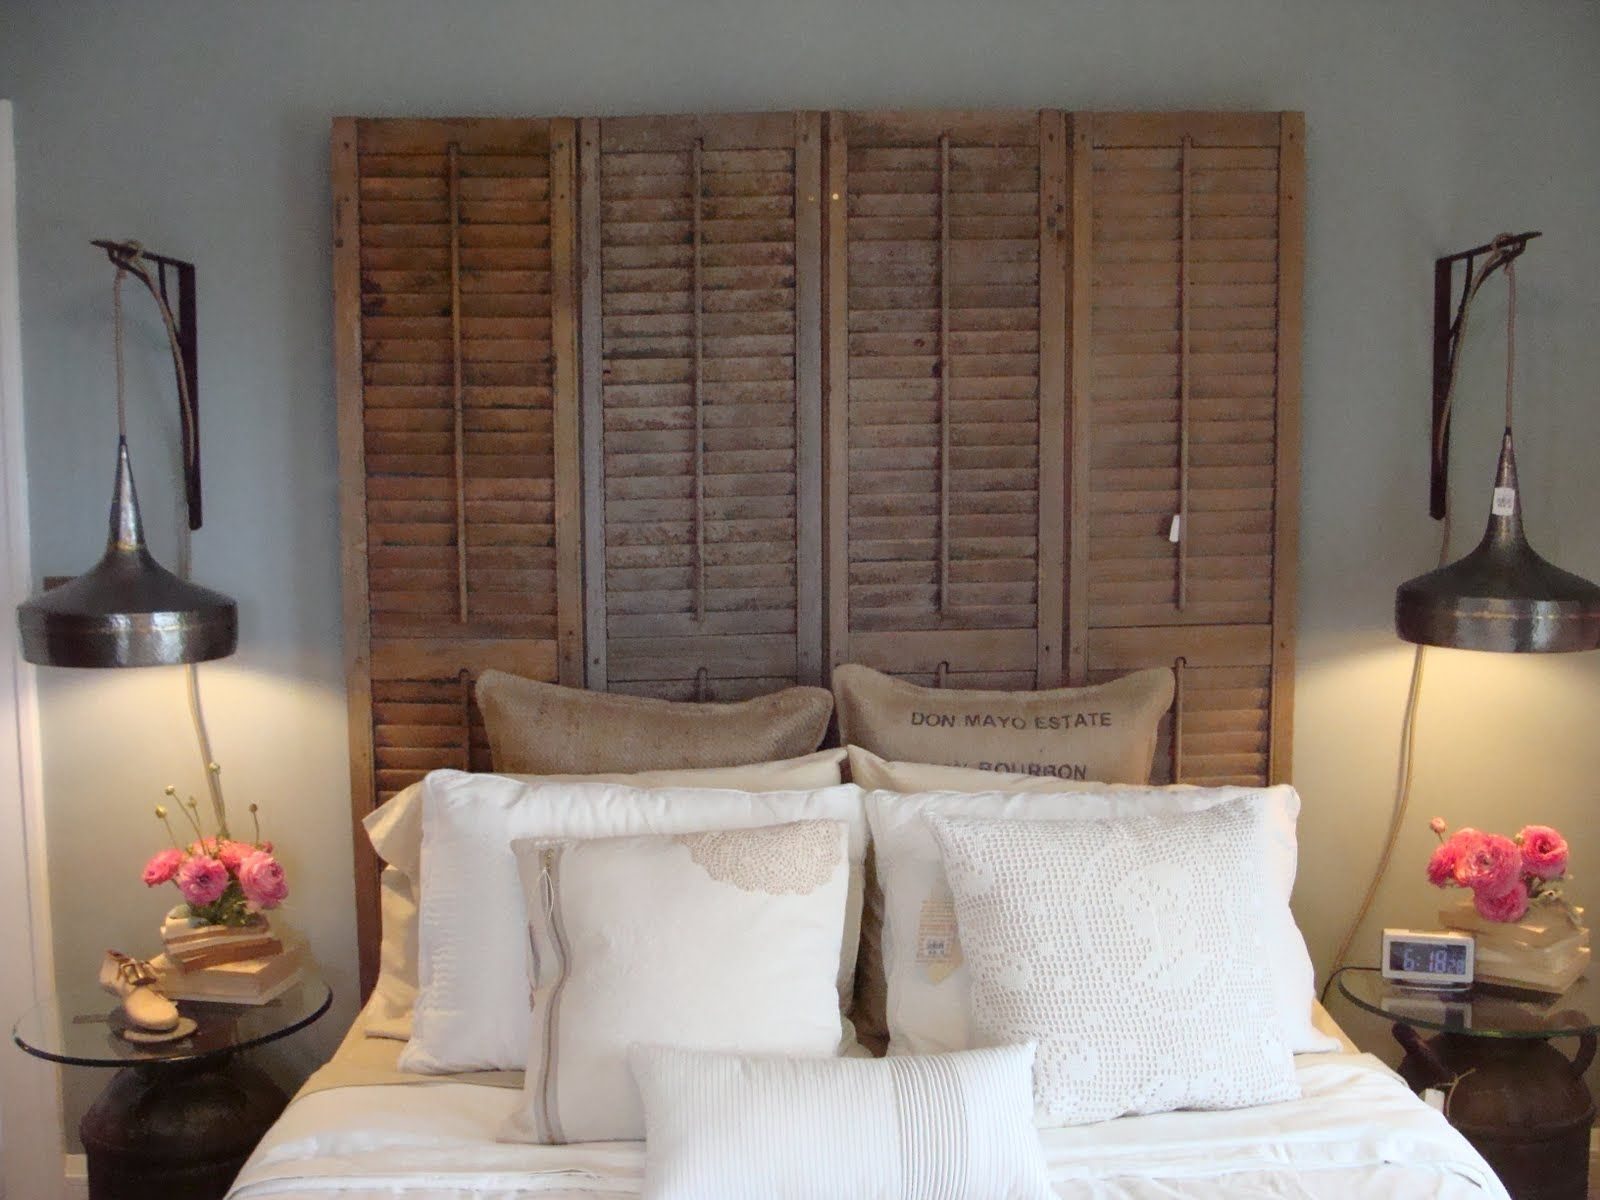 Headboard Made Out Of Shutters The Master Bed With Old Shutters